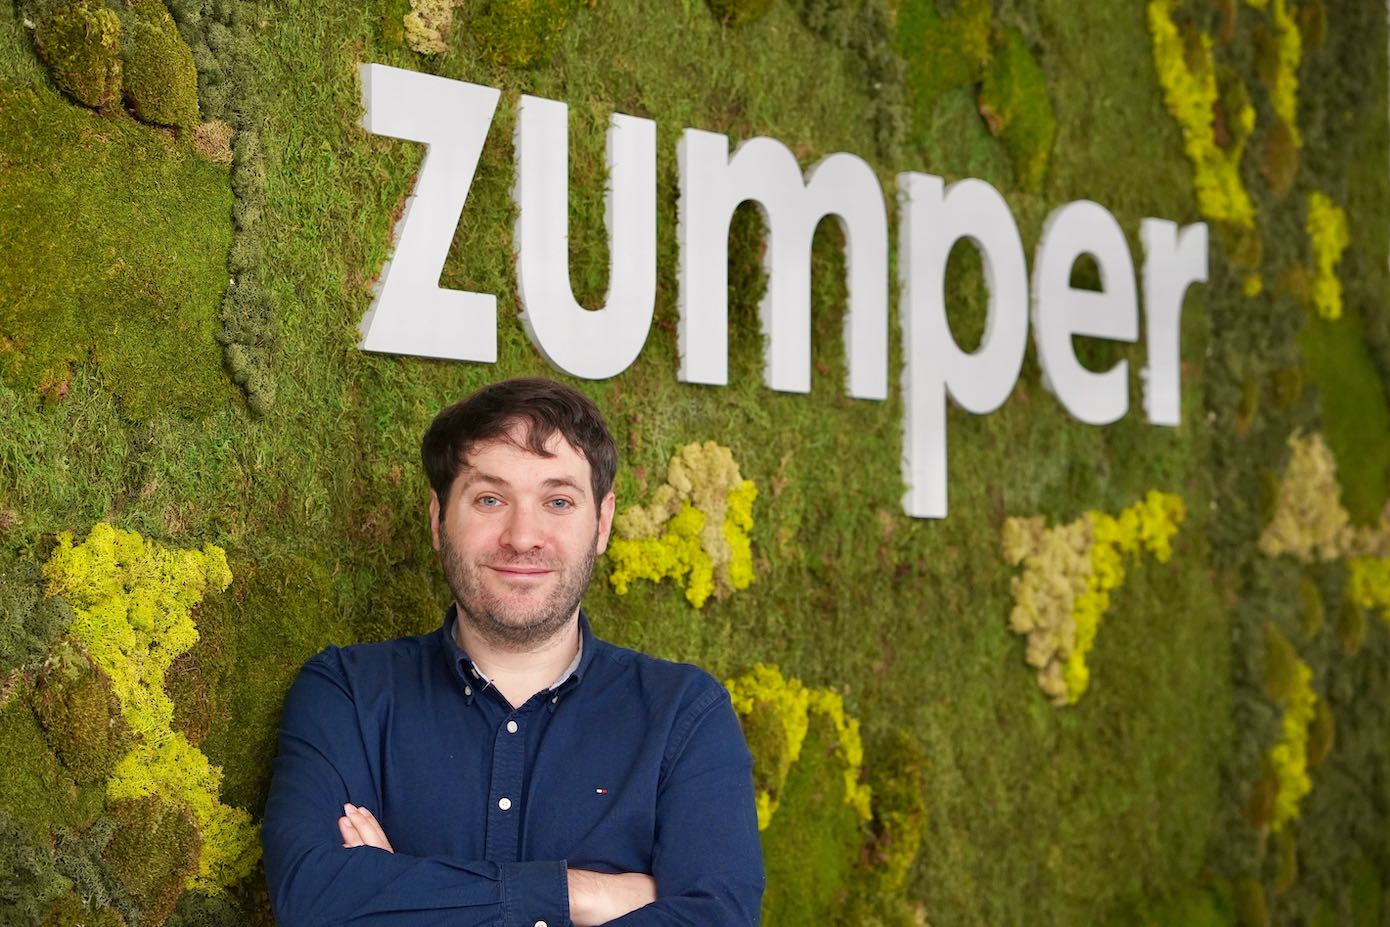 Anthemos Georgiades, CEO of Zumper.